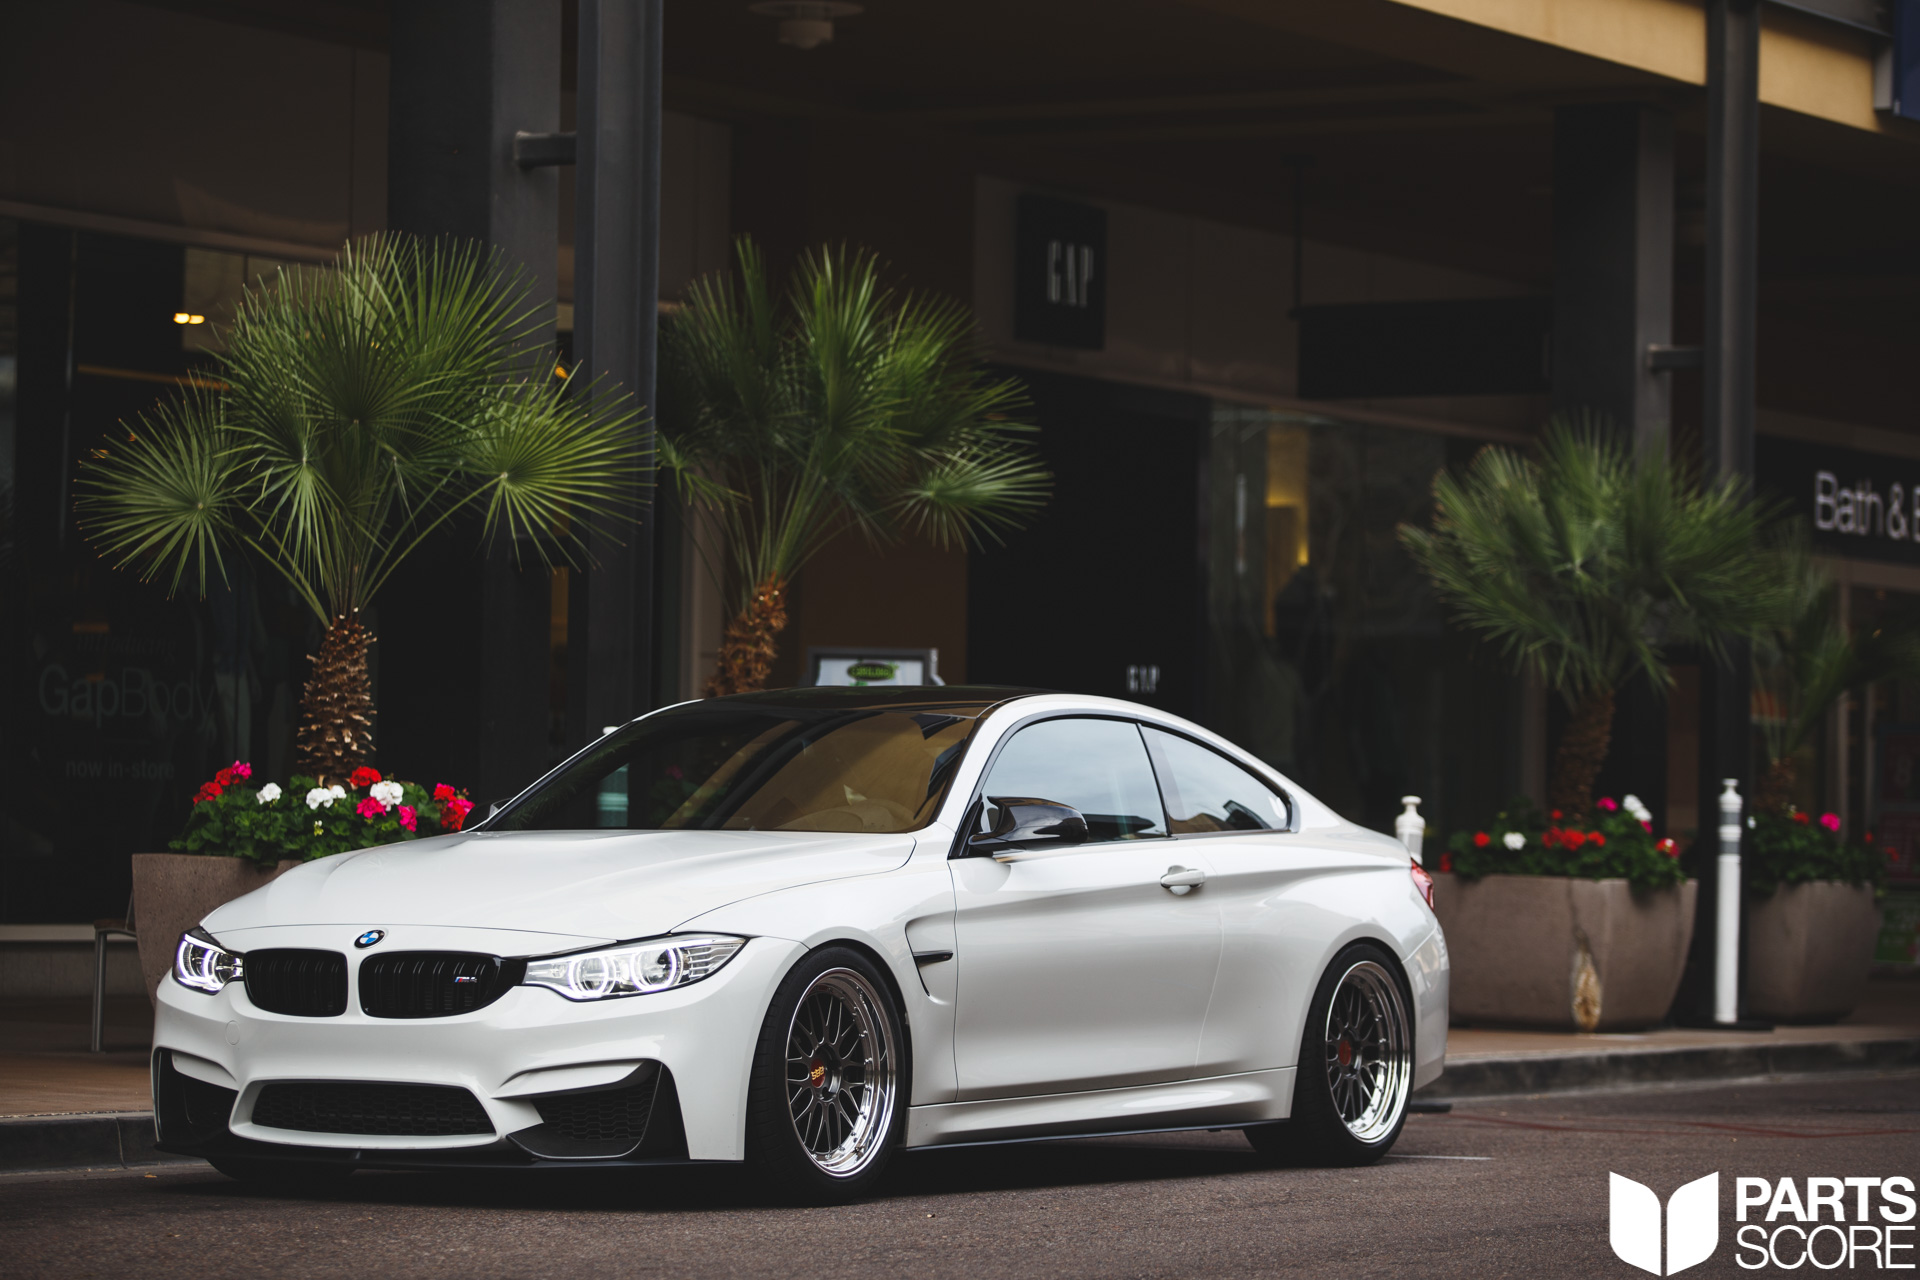 Modification List: <strong>Exterior:</strong> Euro Front Bumper, BMW M Performance Splitter and lip, BMW M Performance Side Skirts, BMW M Performance carbon fiber mirror caps, BMW M Performance rear spoiler, BMW M Performance rear diffuser,<strong>Interior:</strong> Carbon fiber BMW M inlays, BMW M Performance Alcantara &amp; Carbon Fiber Electronic Sport Steering Wheel with Shift Lights and LCD Display, Custom Alpine White paint matched seat backs, BMW M Performance Carbon Fiber e-brake lever, BMW M Performance Alcantara &amp; Carbon Fiber Arm Rest, Custom Fabricated Bolt In Roll Cage, <strong>Engine:</strong> Evolution Race Werks Downpipes, AWE Tuning Non Resonated Switch-Path Exhaust with 102mm black tips, AWE Tuning S-Flow carbon fiber intakes, Burger tuning JB4 Piggy Back, Snow Performance Water Meth, Apline White and M Tri Color Engine Cover, <strong>Suspension:</strong> KW Suspension V3 Coilovers, <strong>Wheels:</strong> 2-Piece Forged BBS LM's in 19x9.5 &amp; 19x11 Toyo R888 Tires, parts score, bmw, bmw m, bmw m4, bmw performance, bmw performance arizona, bmw performance scottsdale, bmw performance az, az bmw, az bmw group, carbon fiber, evolution race werks, snow performance, burger tuning, jb4